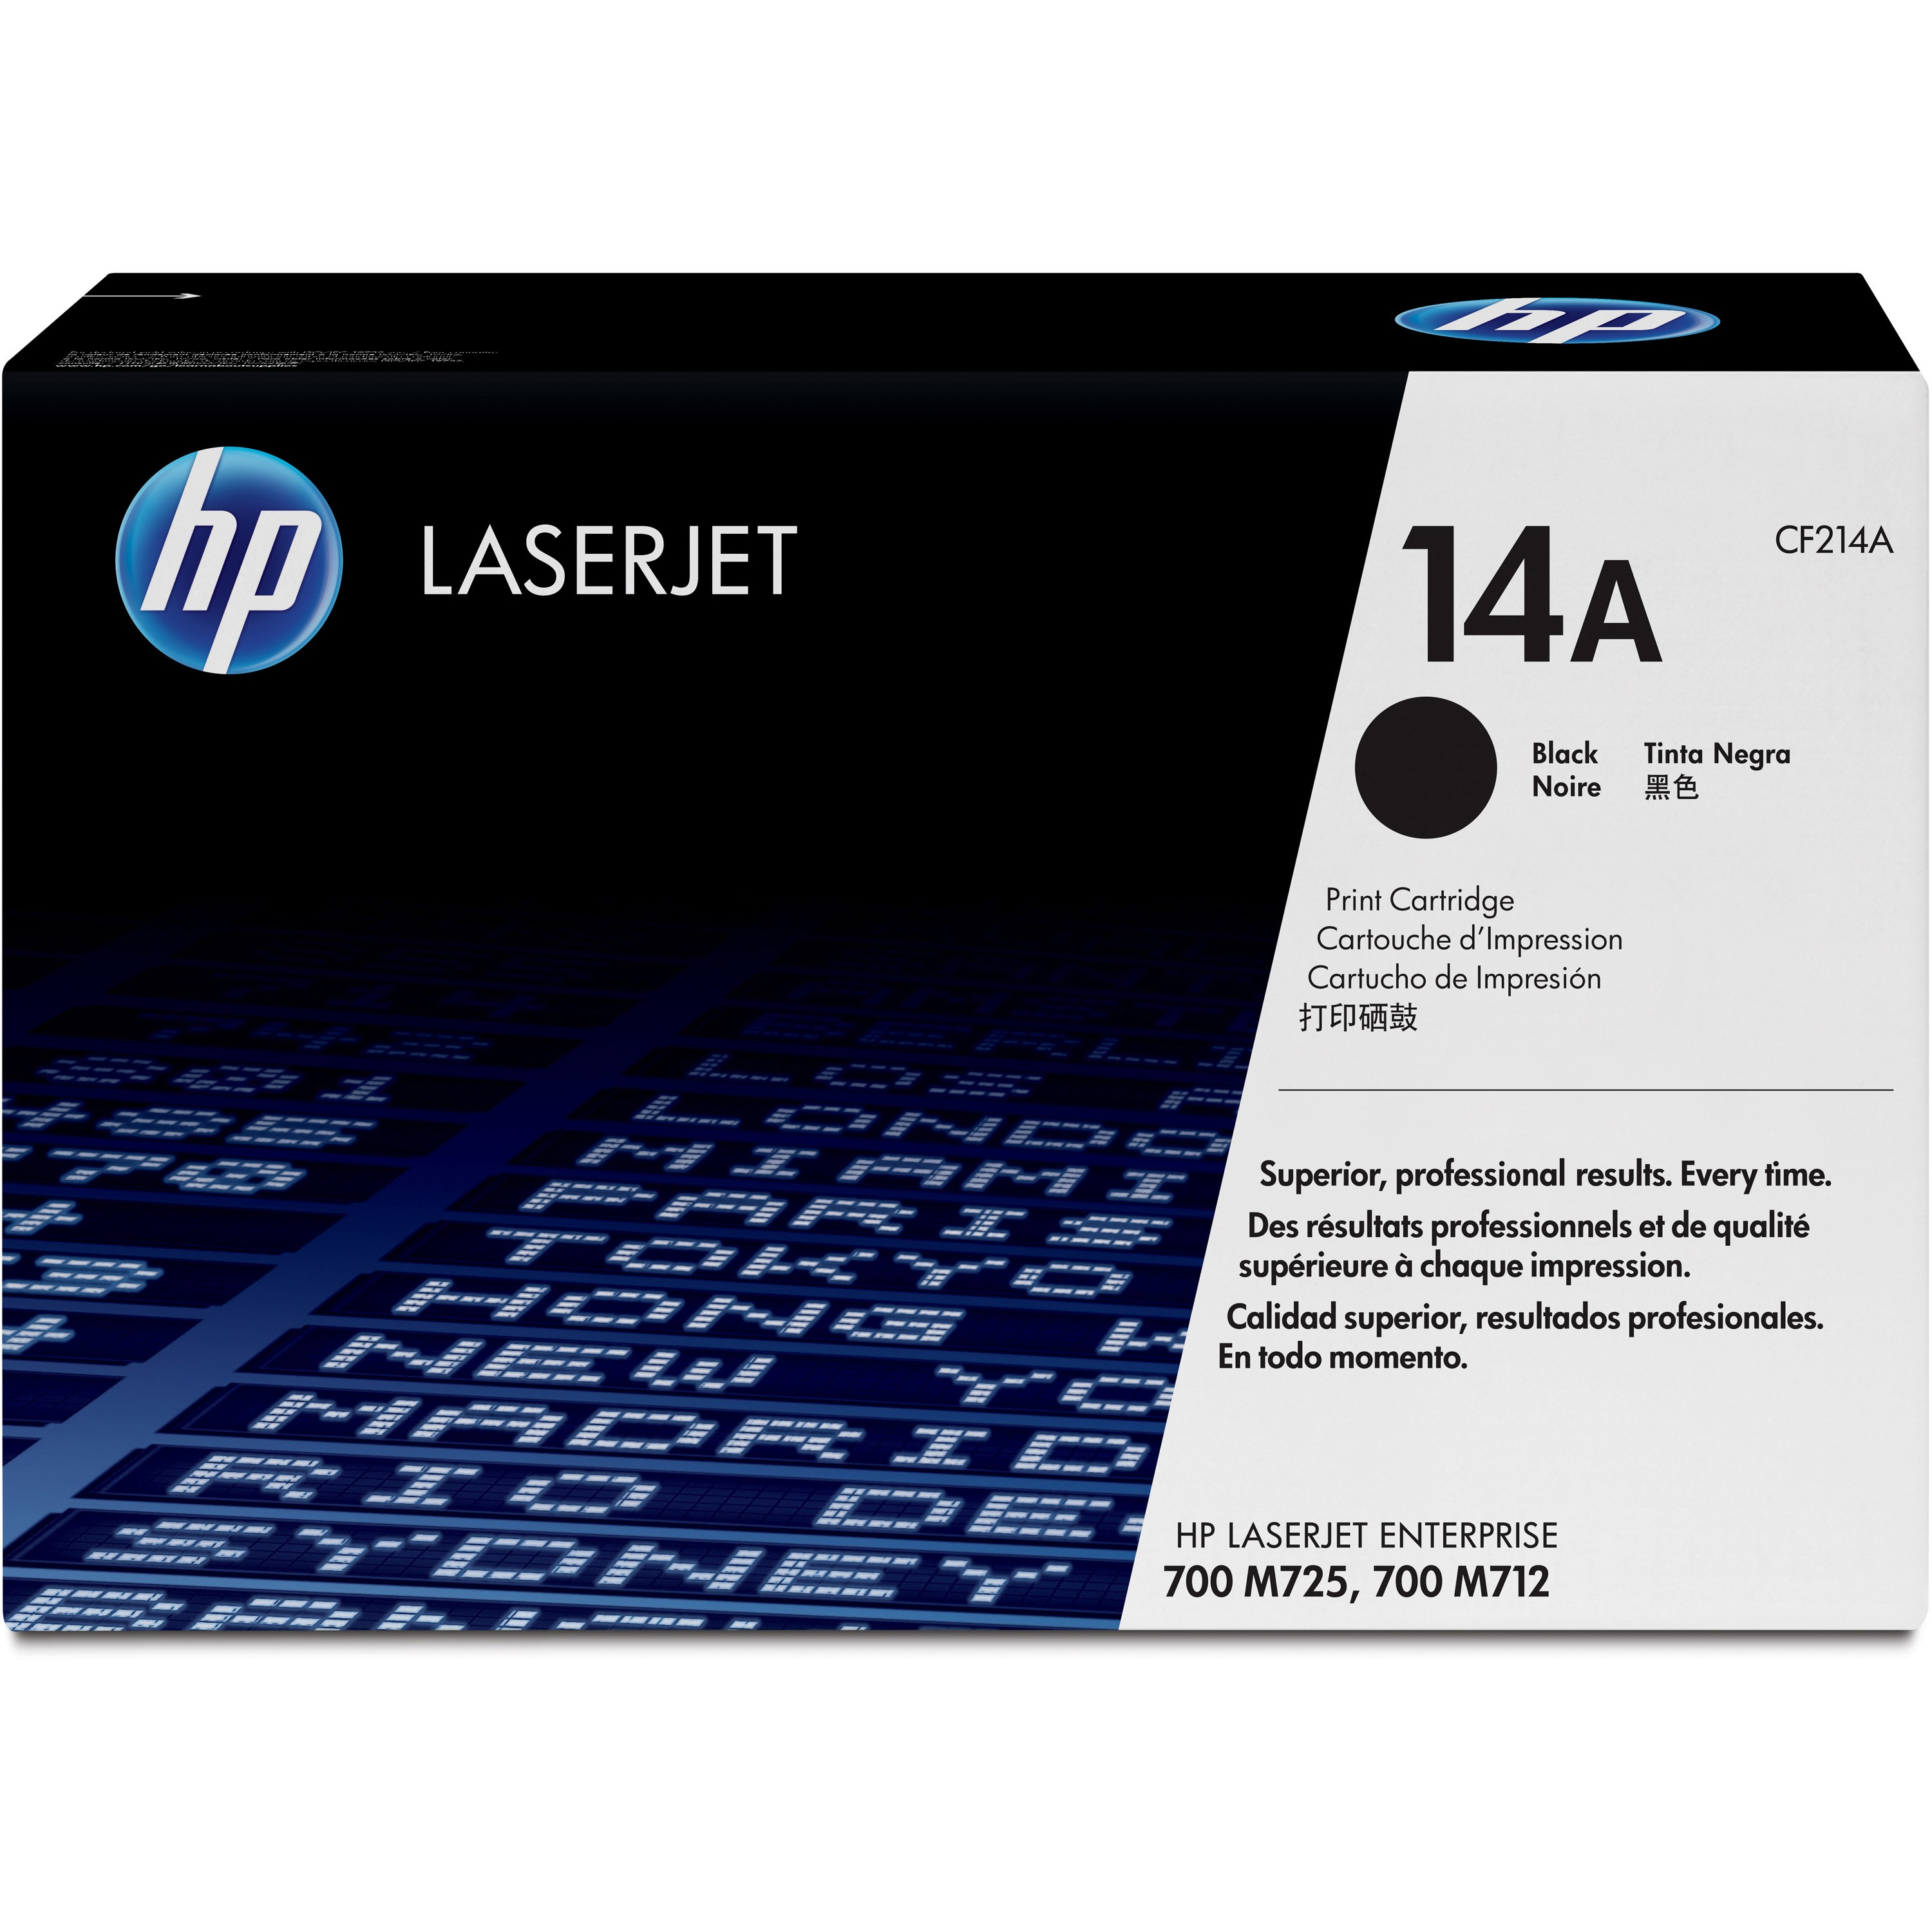 HP, HEWCF214A, 14A/14X LaserJet Toner Cartridge, 1 Each